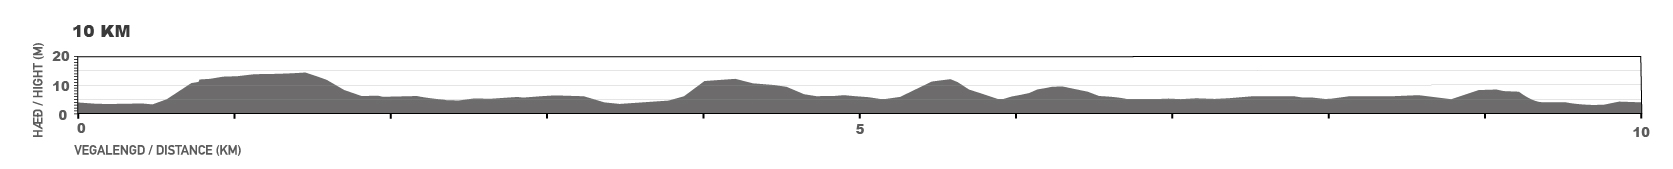 Elevation map for the 10 km course.